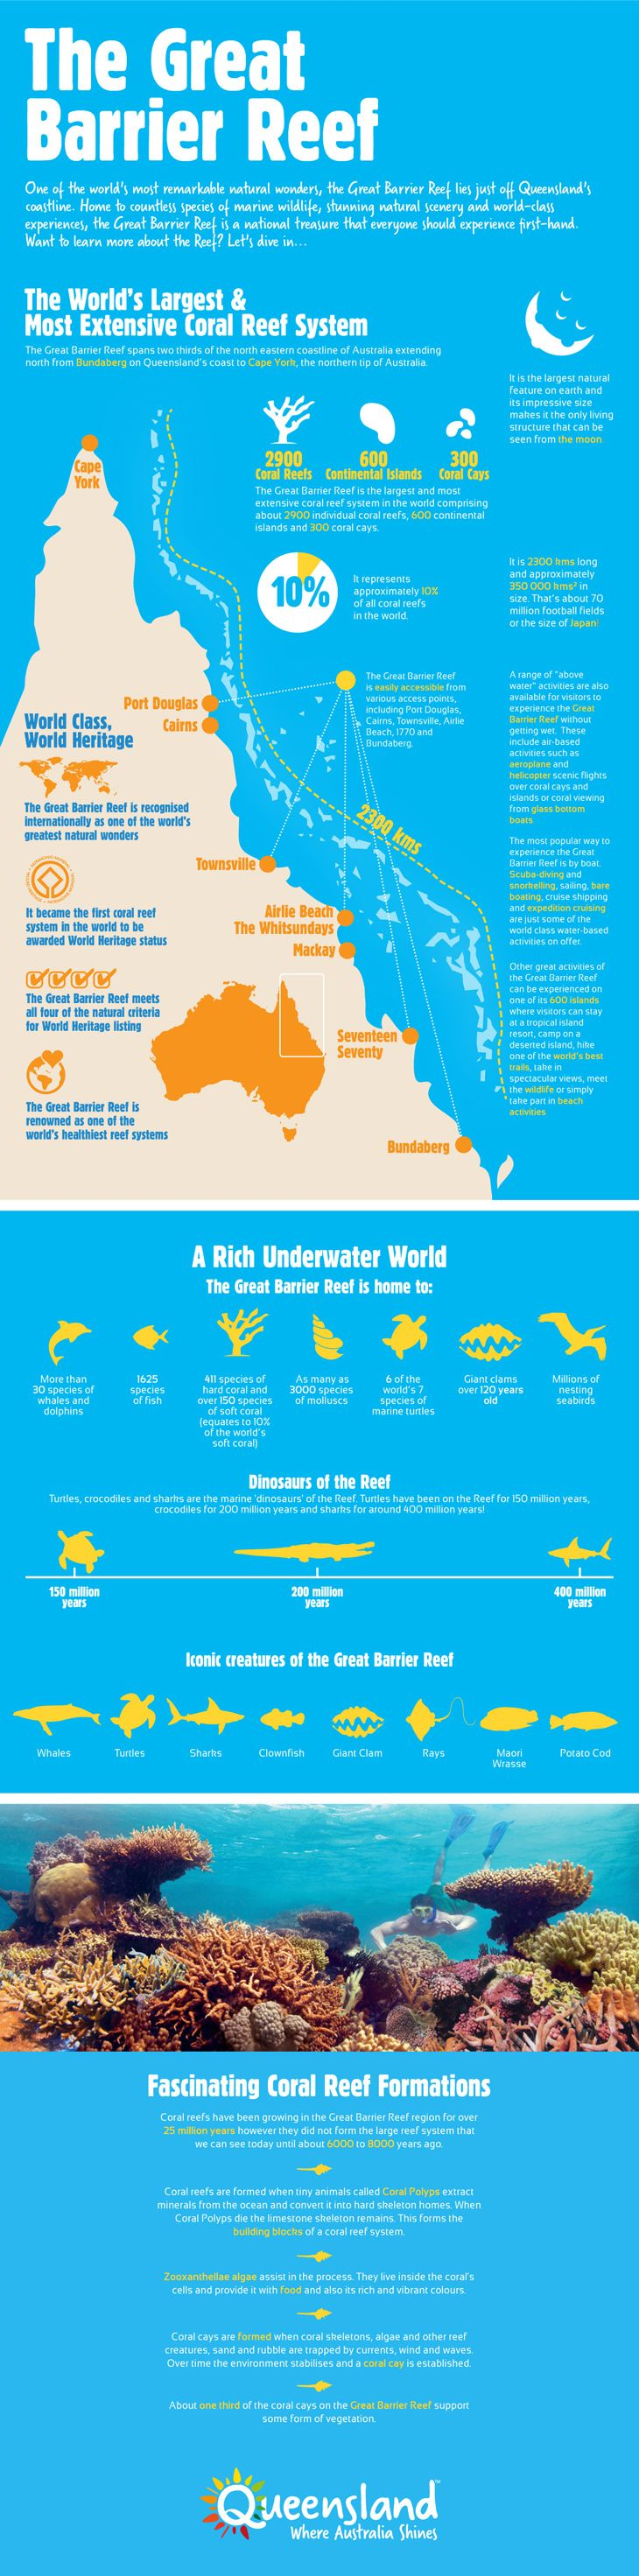 australia trivia Australia is home to the longest fence in the world it is 5,614 km long, and was originally built to keep dingoes away from fertile land it is 5,614 km long, and was originally built to keep dingoes away from fertile land.